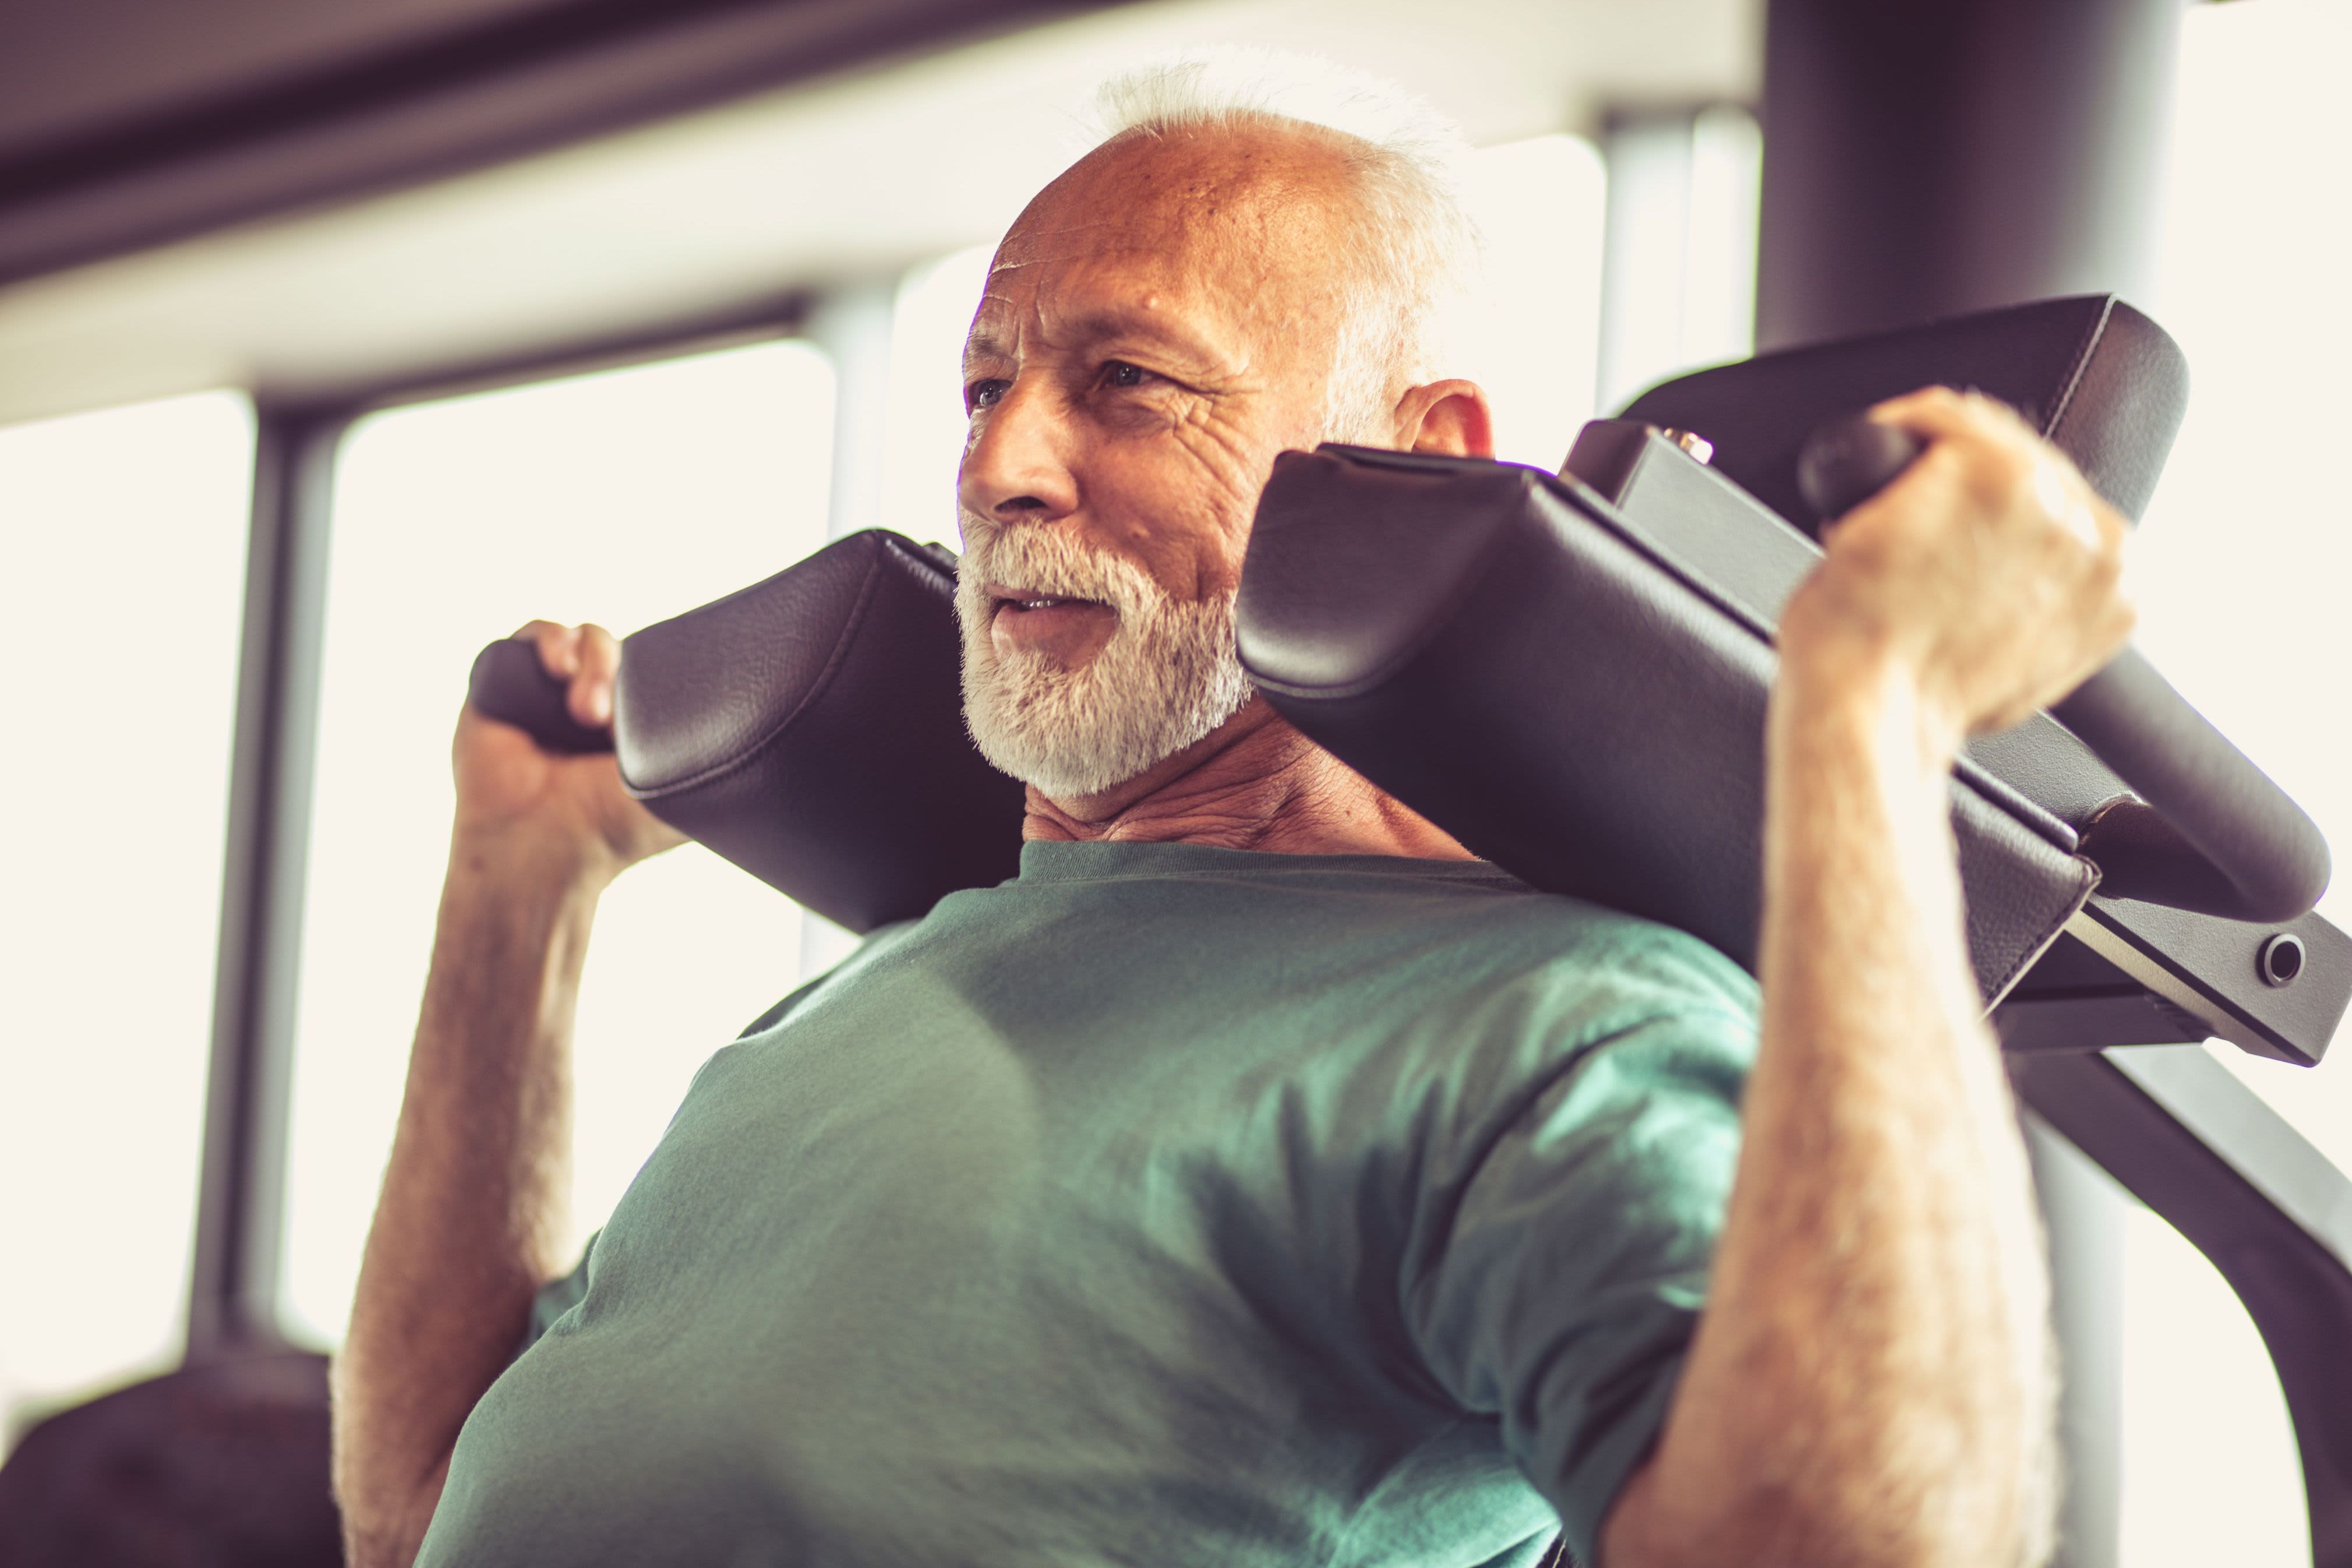 Resident working out at Marquis Rockwall in Rockwall, Texas